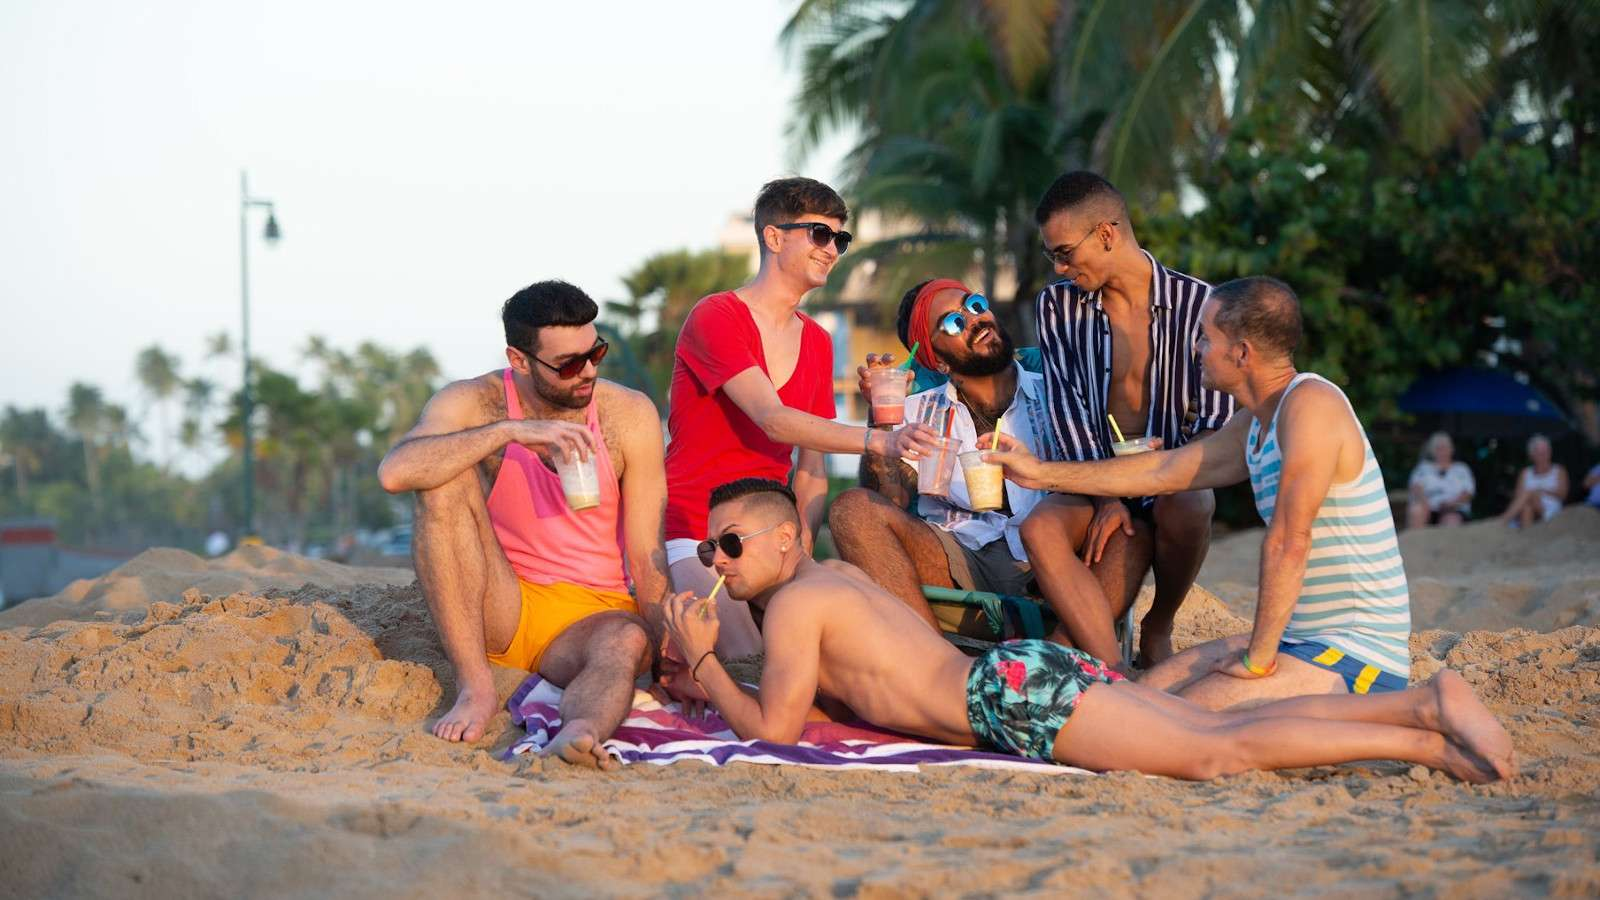 Puerto Rico is our top pick for the most gay friendly island in the Caribbean